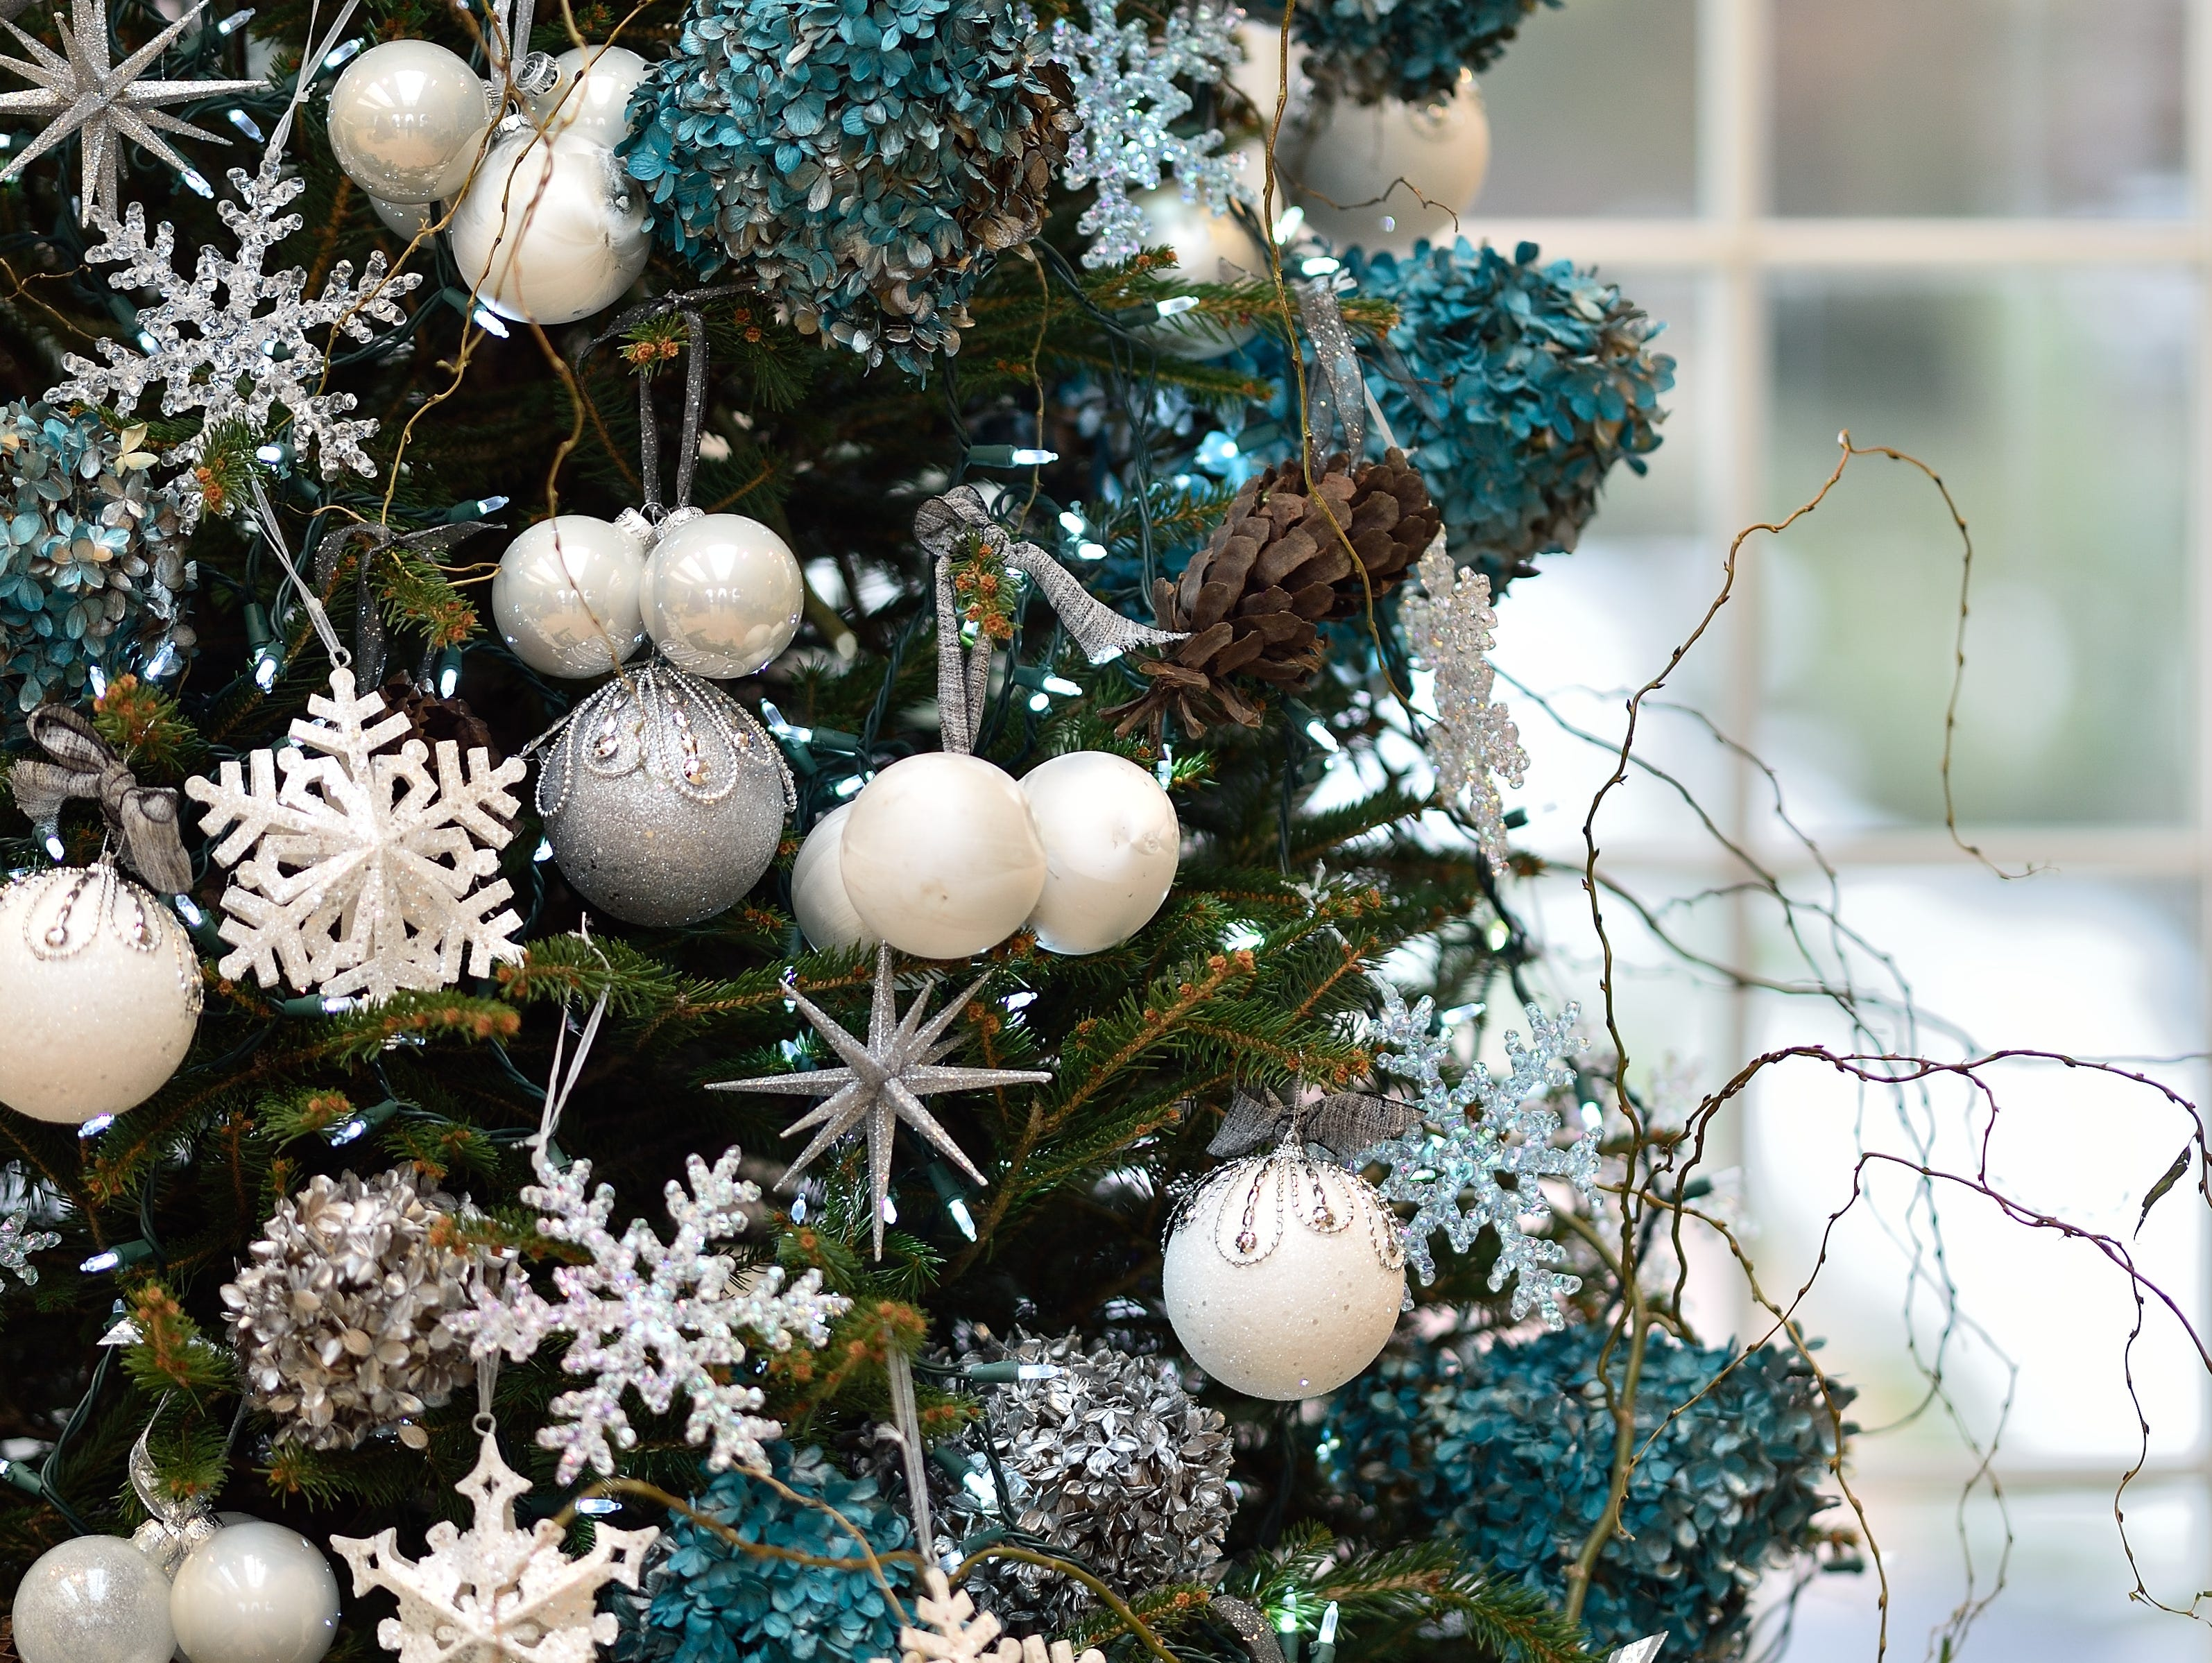 Designers for the Christmas Trees are these floral designers:   •         Floral Designs of Mt. Joy,  •         Jeffrey's Flowers (Mechanicsburg),  •         Maria's Flowers (Hershey),  •         Paper Moon Flowers & Events (Harrisburg),  •         Rhapsody in Bloom (Palmyra) and  •         Royer's Flowers & Gifts (Hershey).